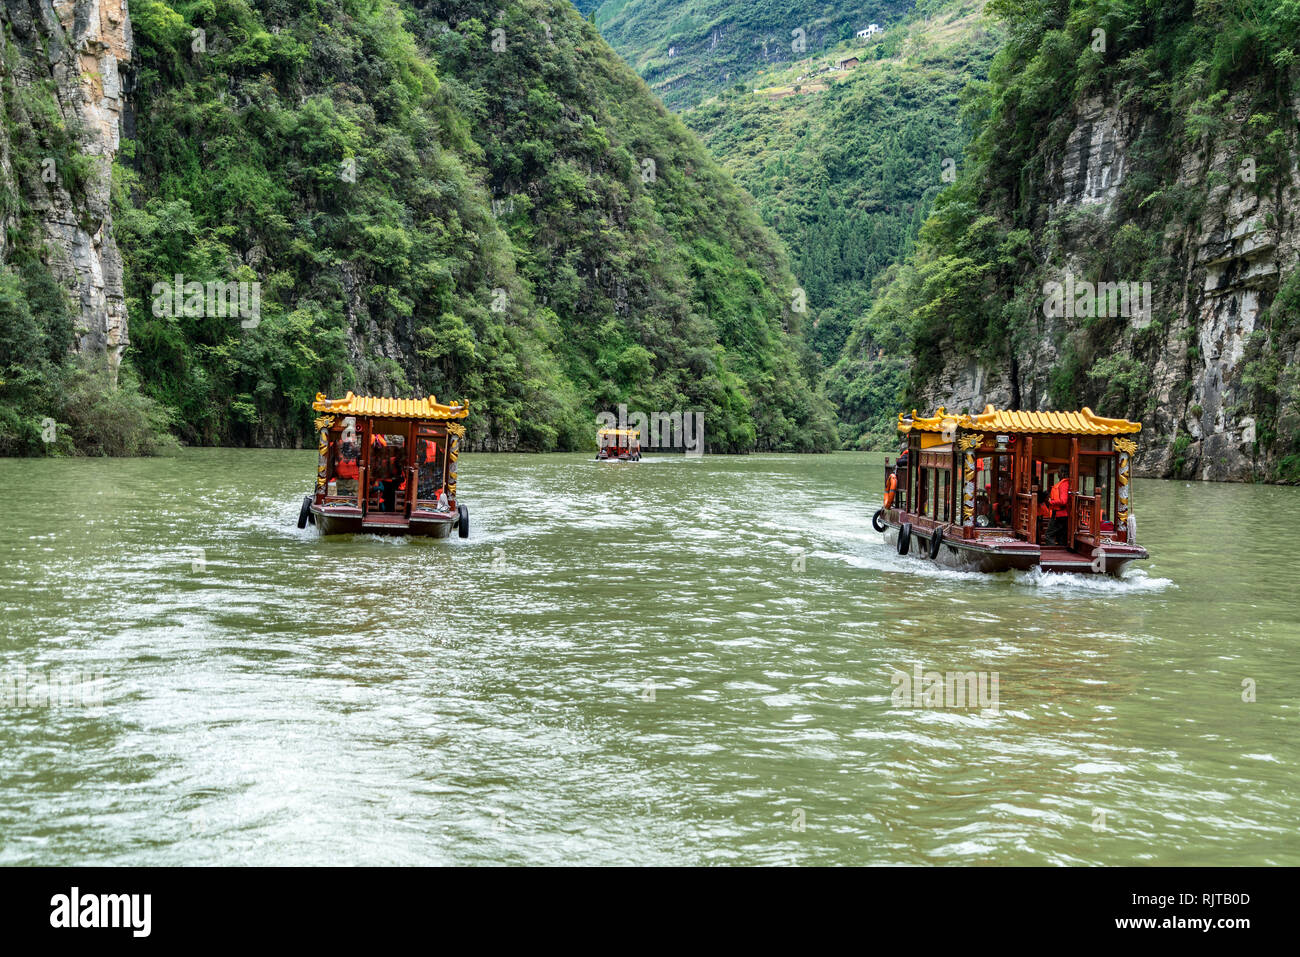 Tour Boats On River - Stock Image